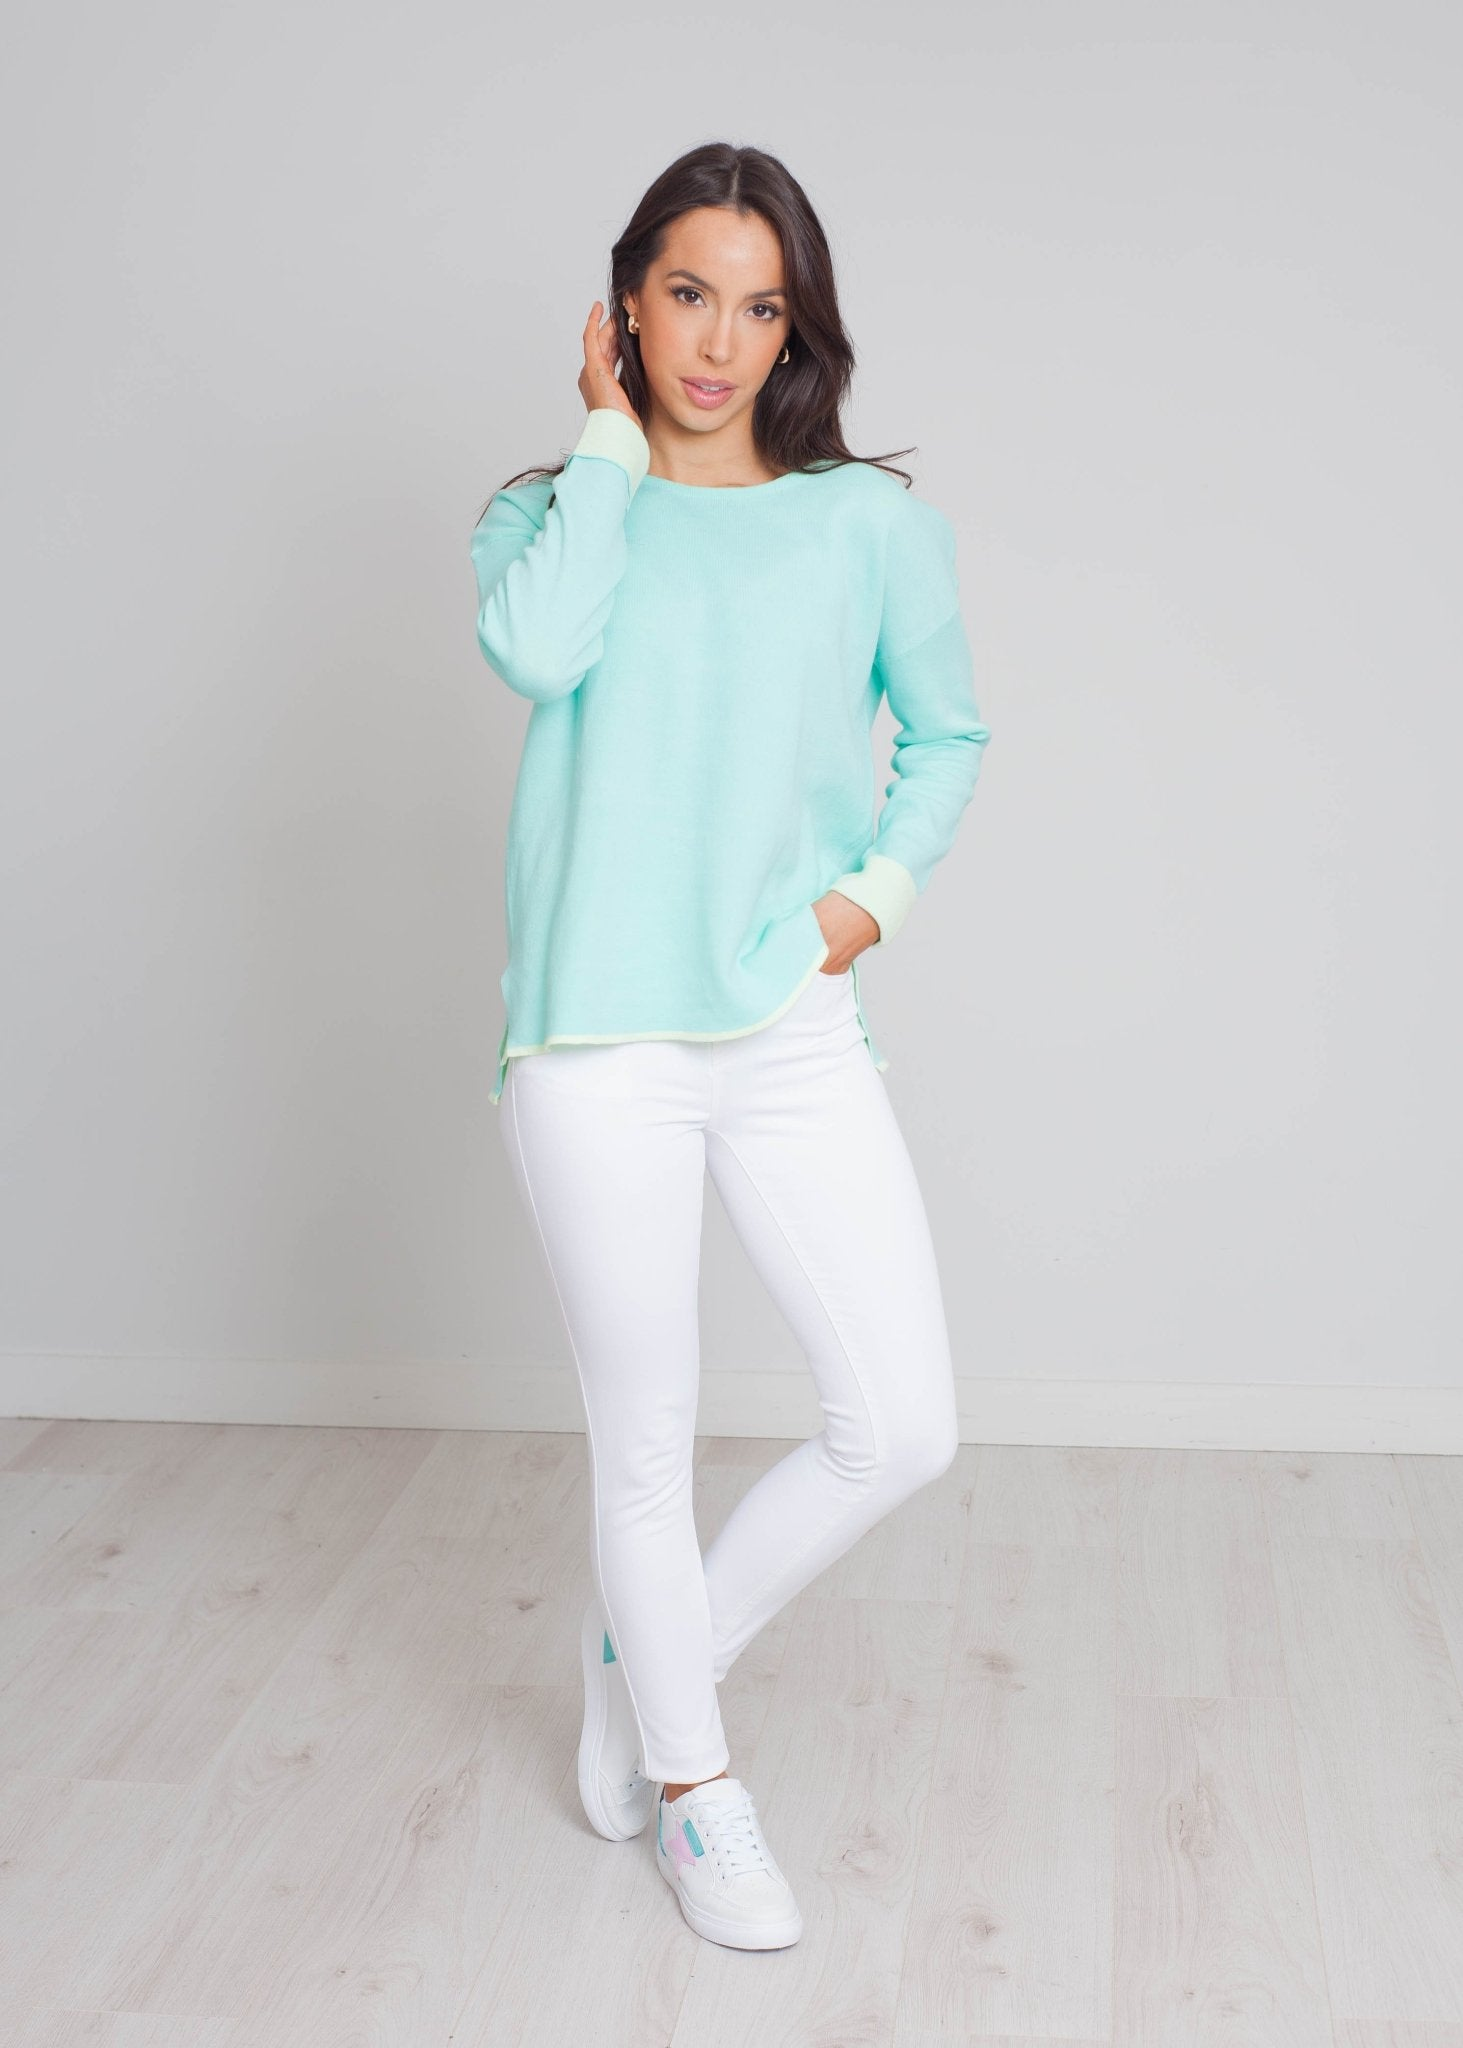 Darcey Round Neck Jumper In Turquoise - The Walk in Wardrobe